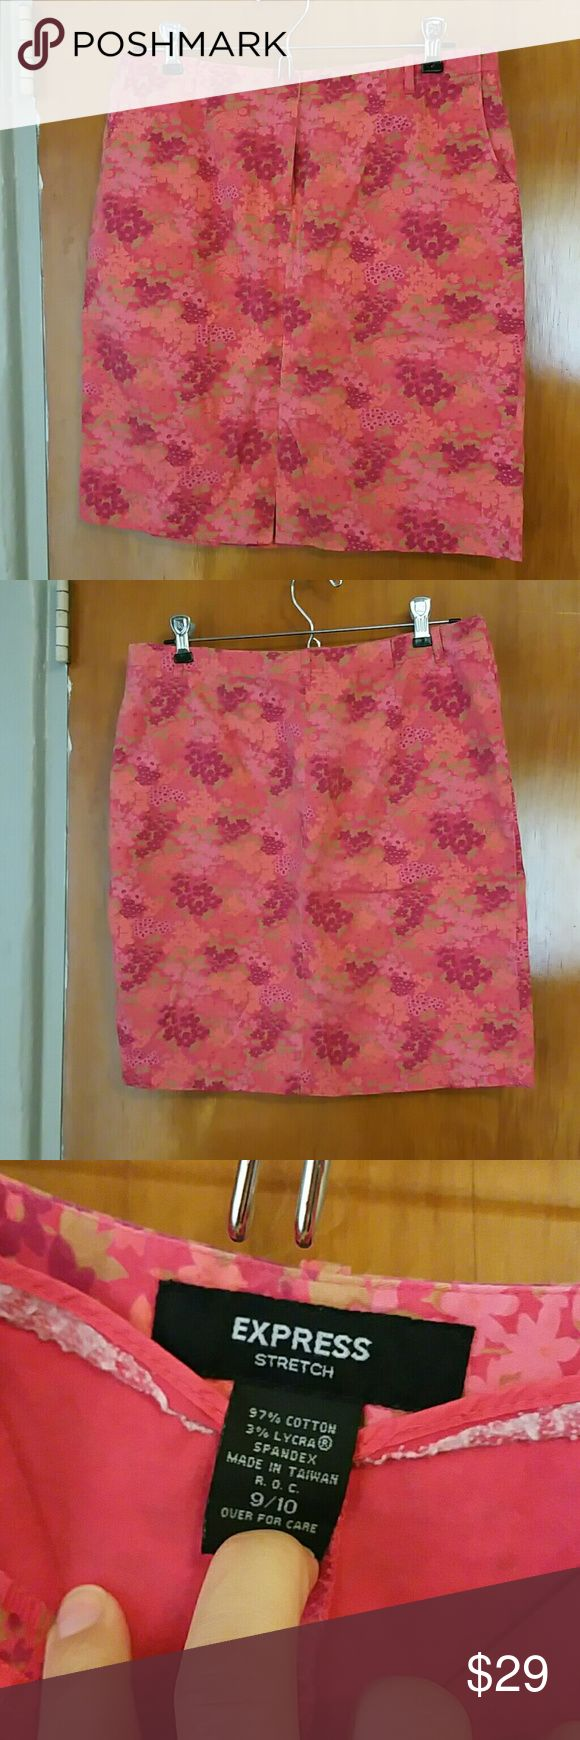 Express Floral Stretch Skirt Fun and colorful and comfortable stretchy skirt by Express. Perfect for work during the Spring and Summer. Flowers remind me of hyacinths Express Skirts Pencil